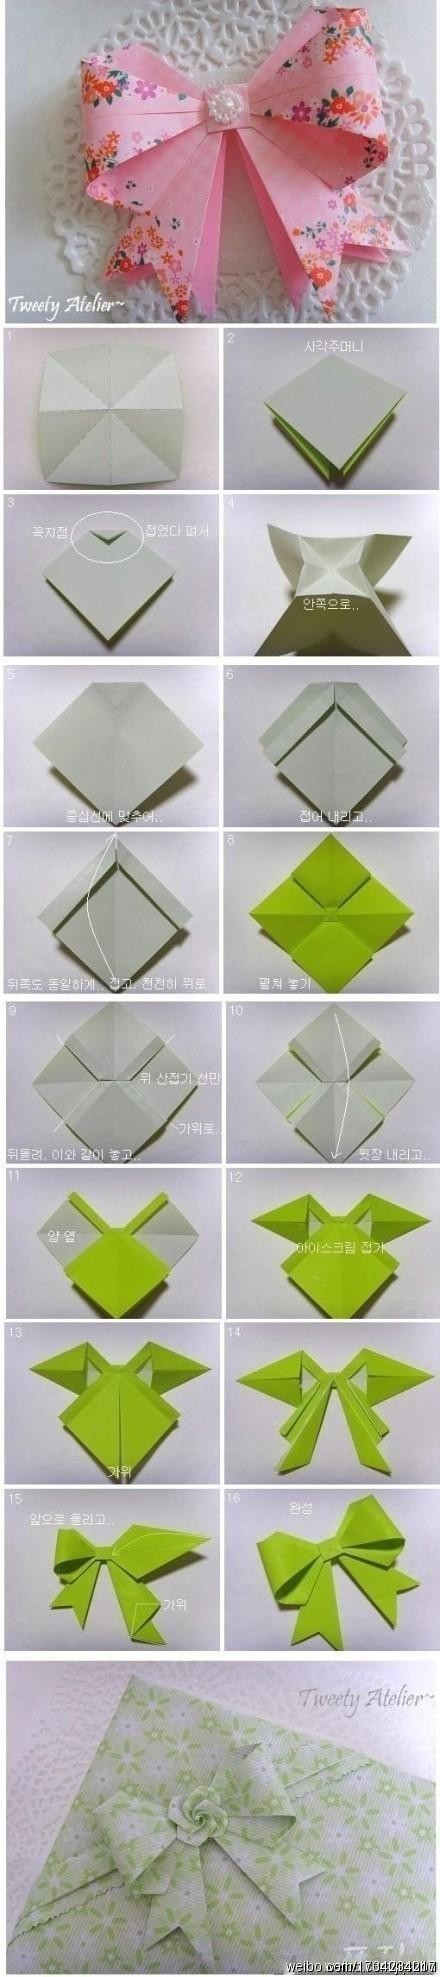 origami bow instructions